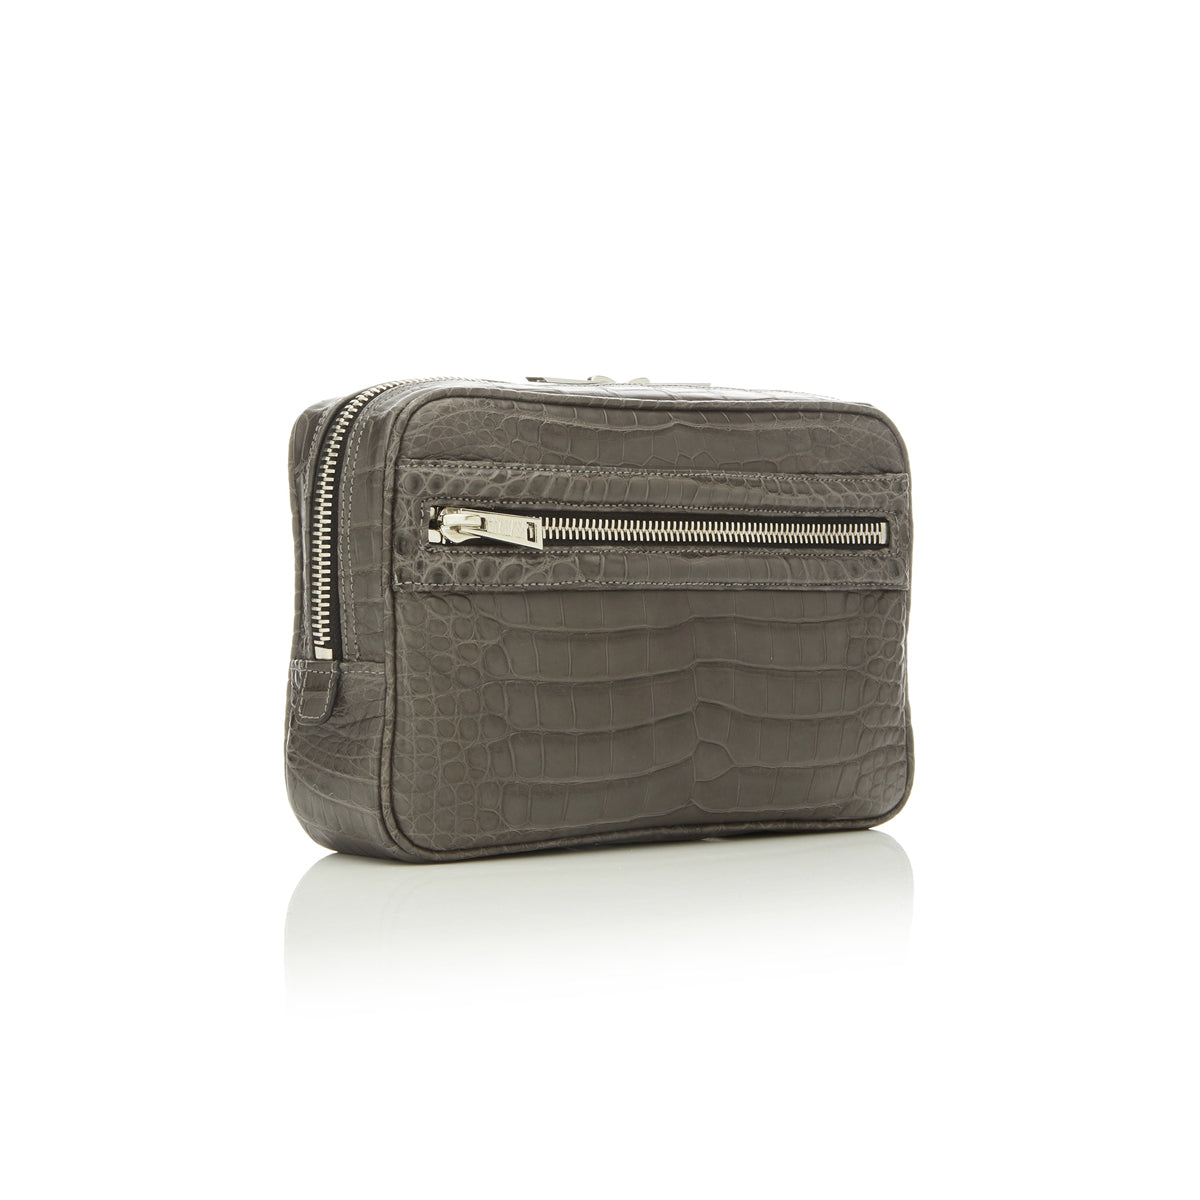 Small Toiletry Case - Grey Alligator